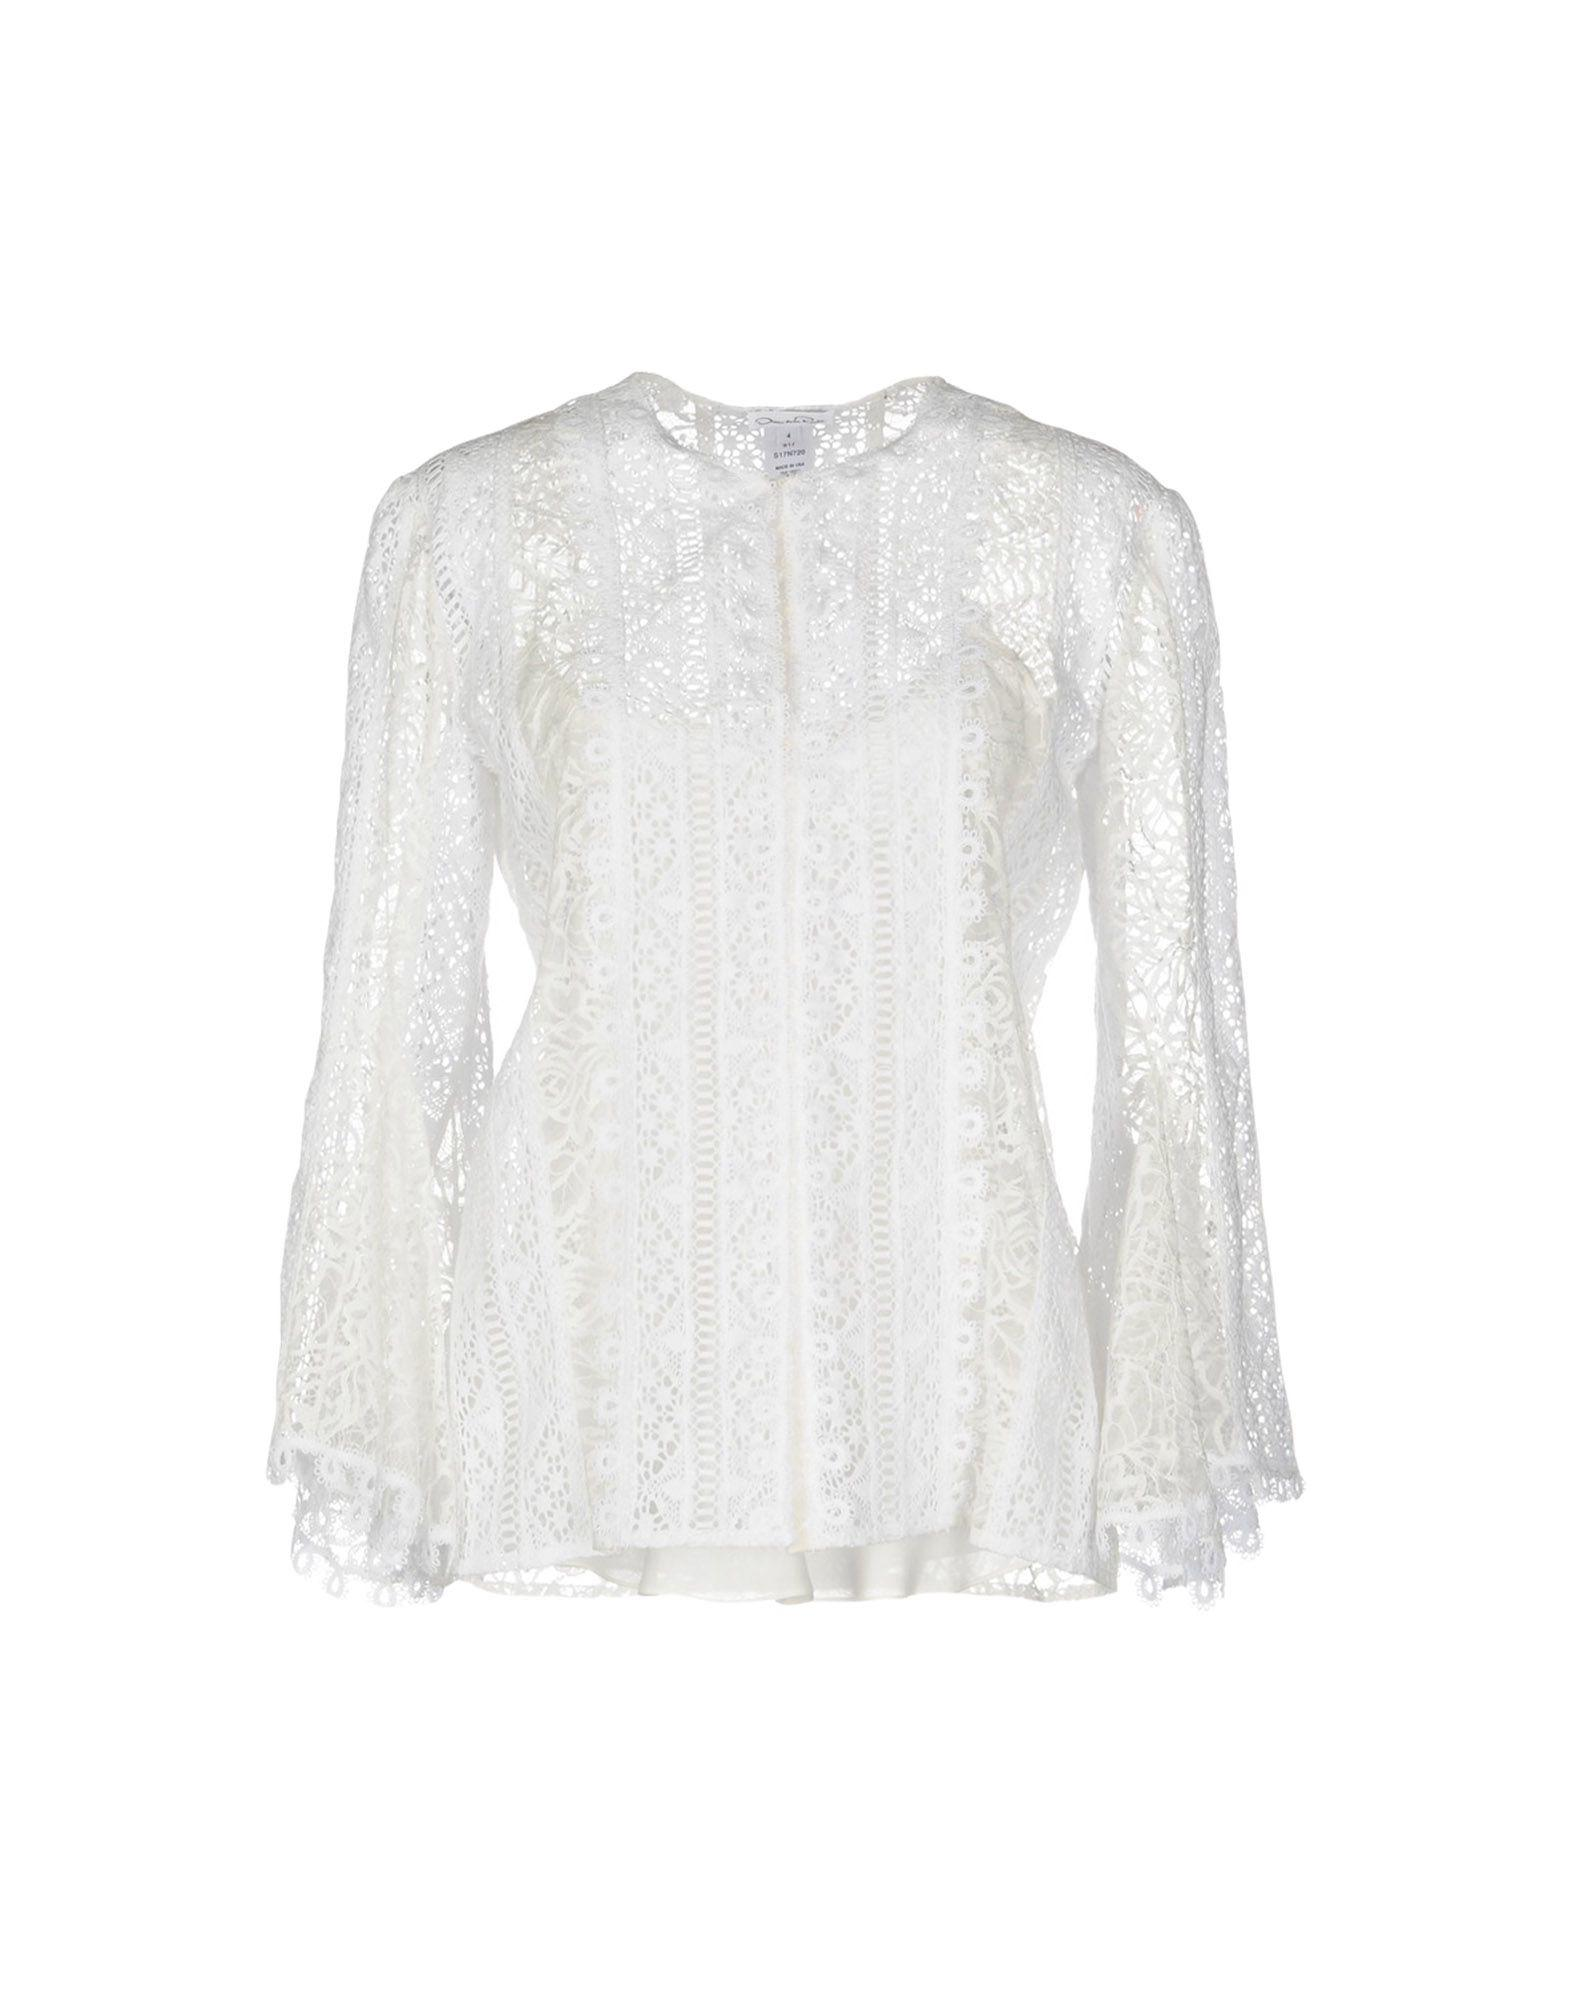 Footaction roll sleeve blouse - White Oscar De La Renta Discounts Cheap Price Free Shipping Hot Sale Sale Online scIVlfKWg2